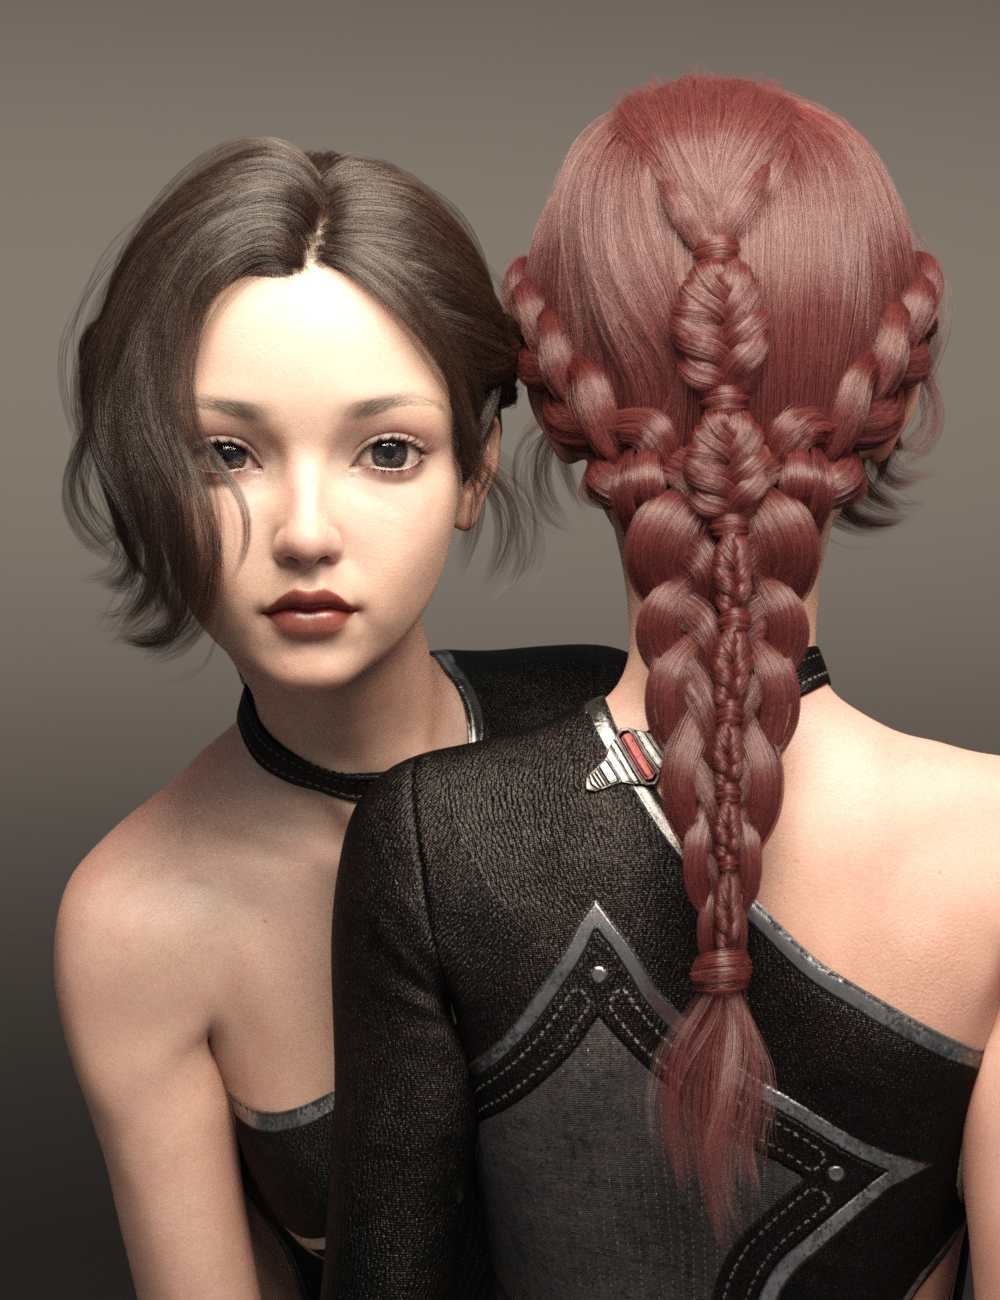 Cui and Cui Hair with Expressions for Genesis 8.1 Female by: Ergou, 3D Models by Daz 3D